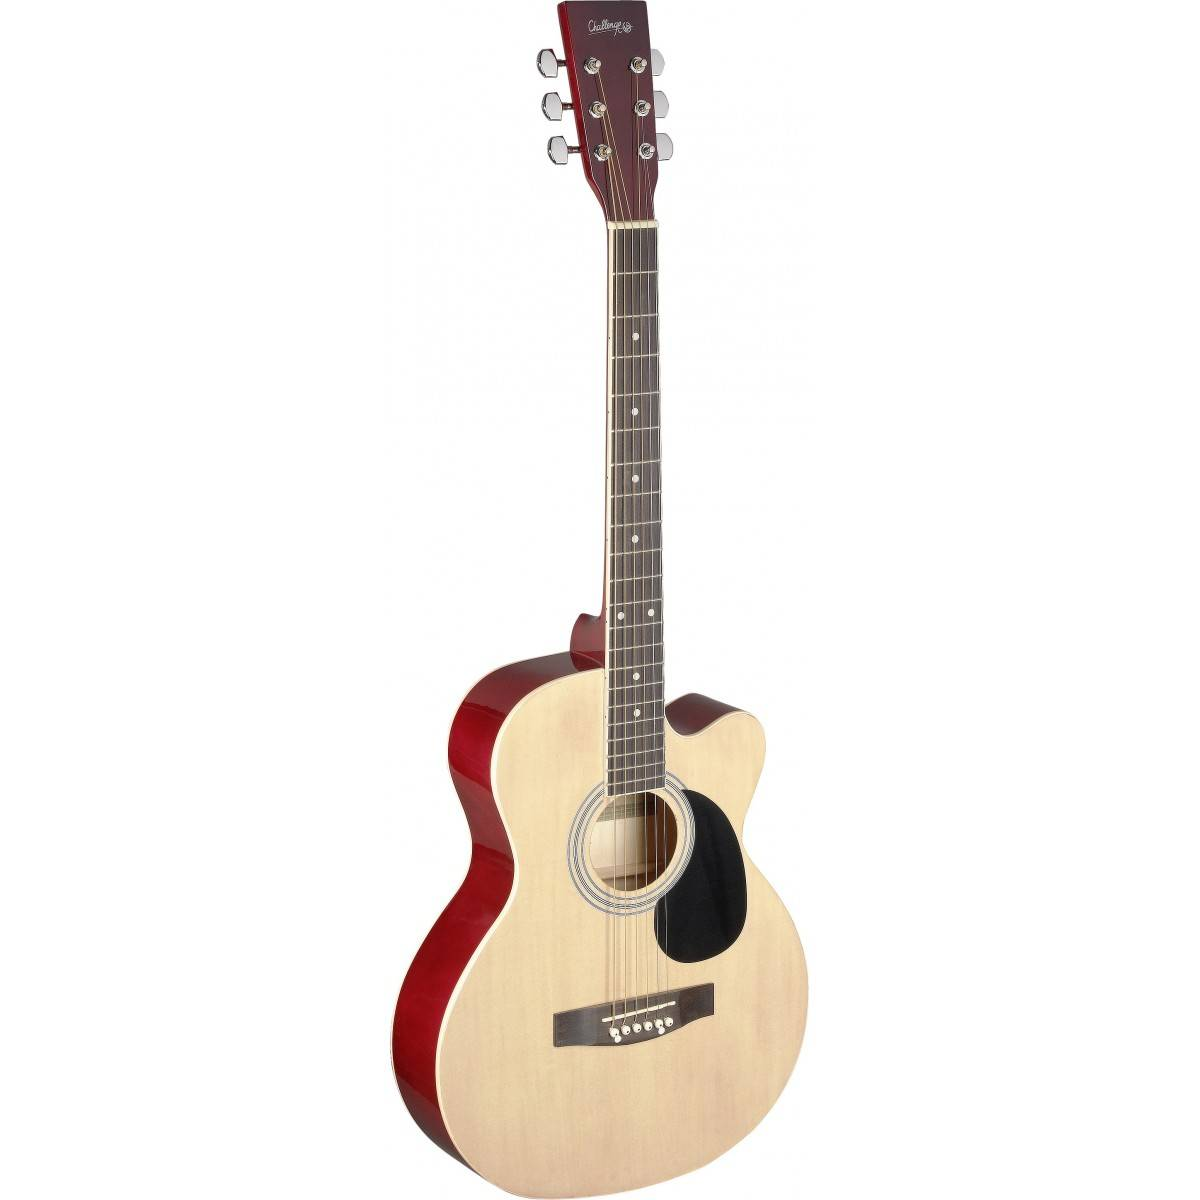 Guitare Folk Acoustique Naturel